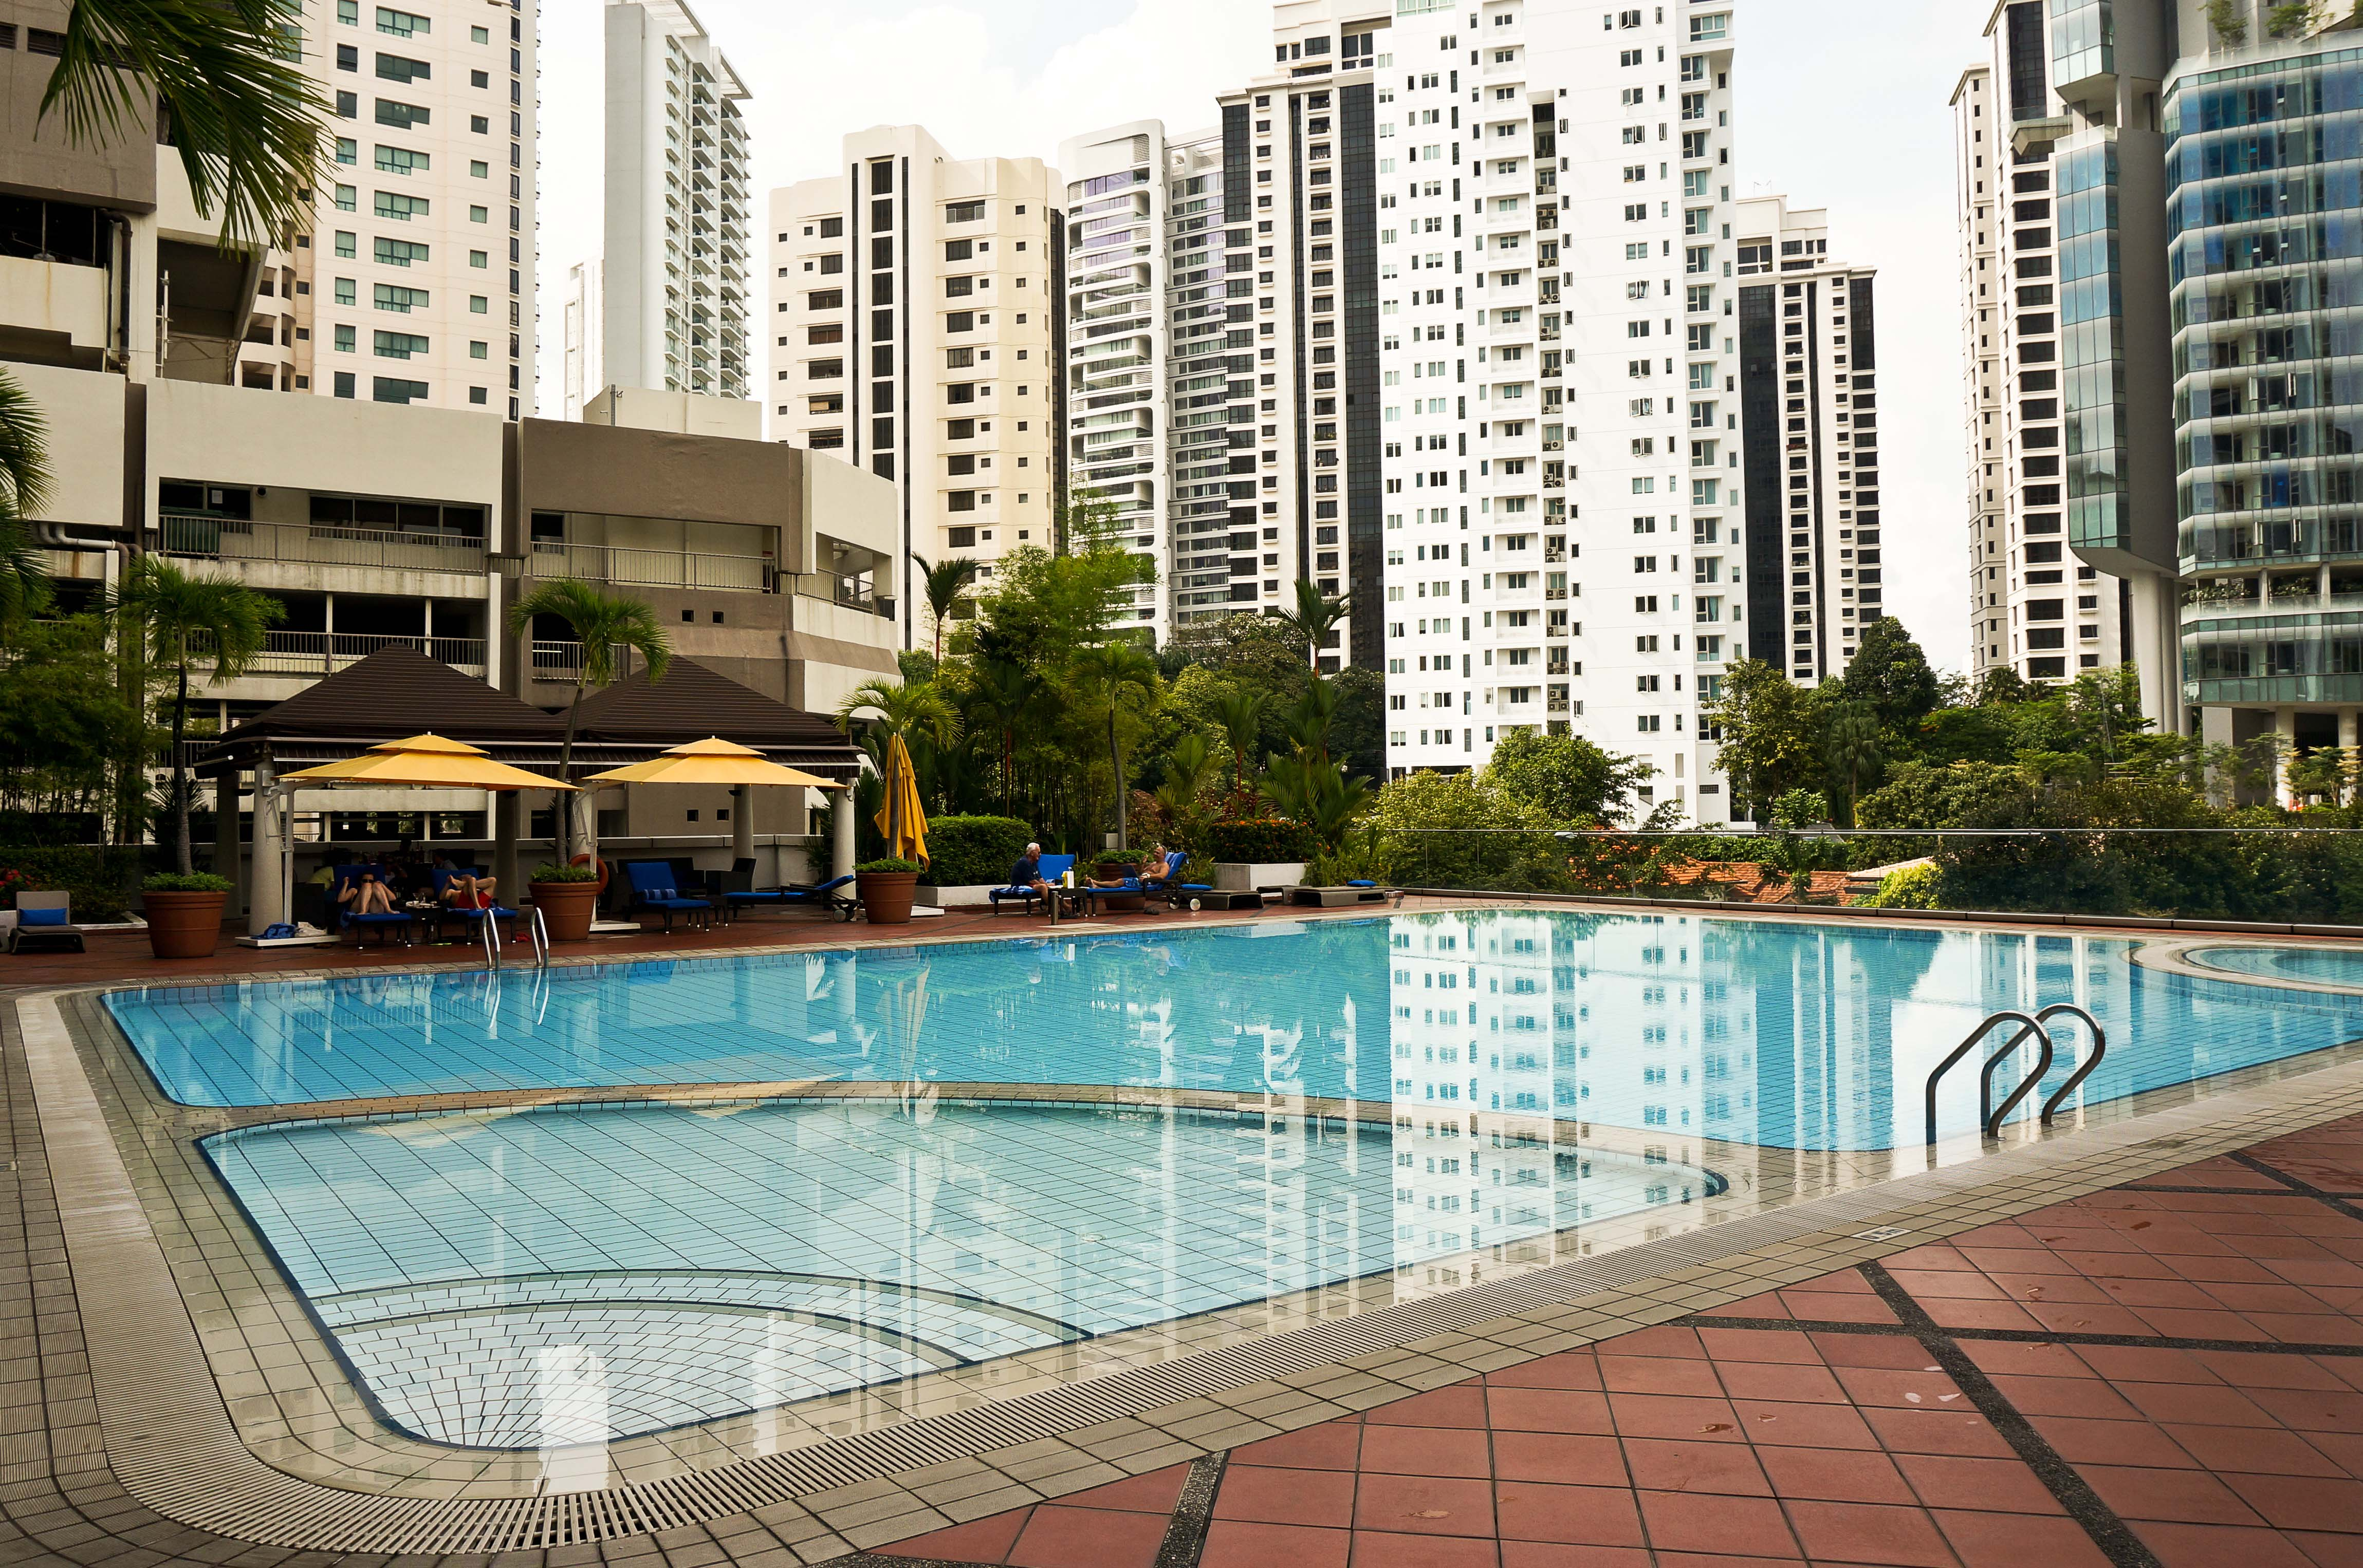 singapore airport swimming pool review